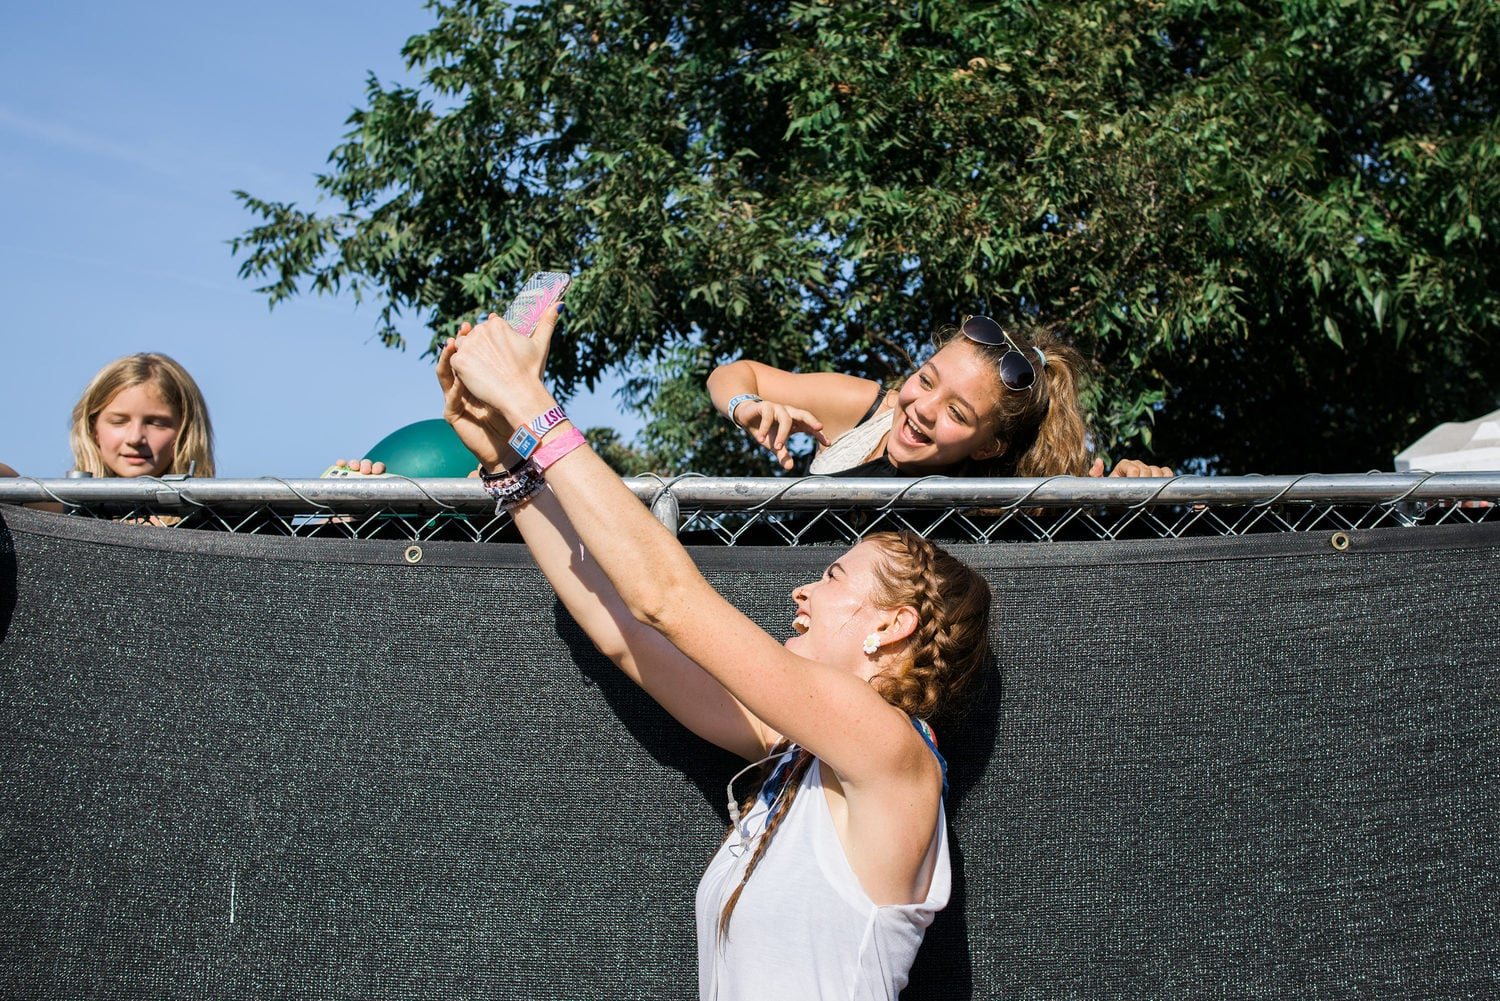 Misterwives taking selfies over a fence